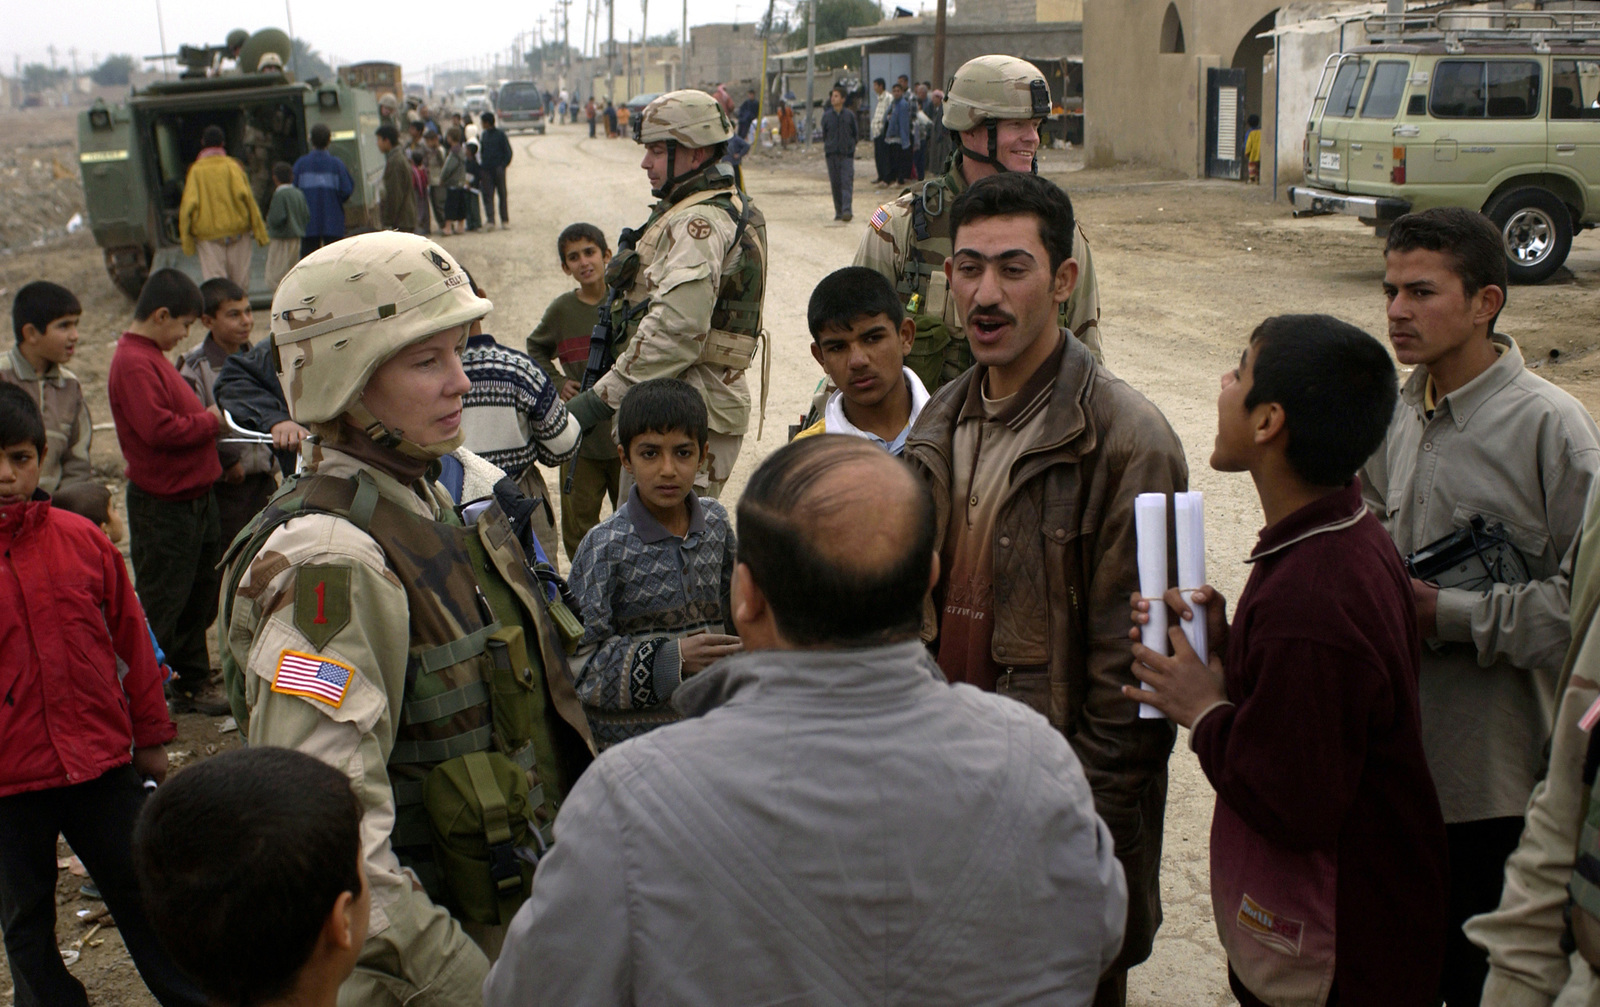 U.S. Army STAFF SGT. Kelly Tiffany (left) from the 570th Physcological Operations attached to the 1ST Battalion, 278th Regimental Combat Team, 1ST Infantry Division, talks to Iraqis on a street during a patrol at Balad Ruz, Iraq, on Dec. 30, 2004. (USAF PHOTO by STAFF SGT. Shane A. Cuomo) (Released)